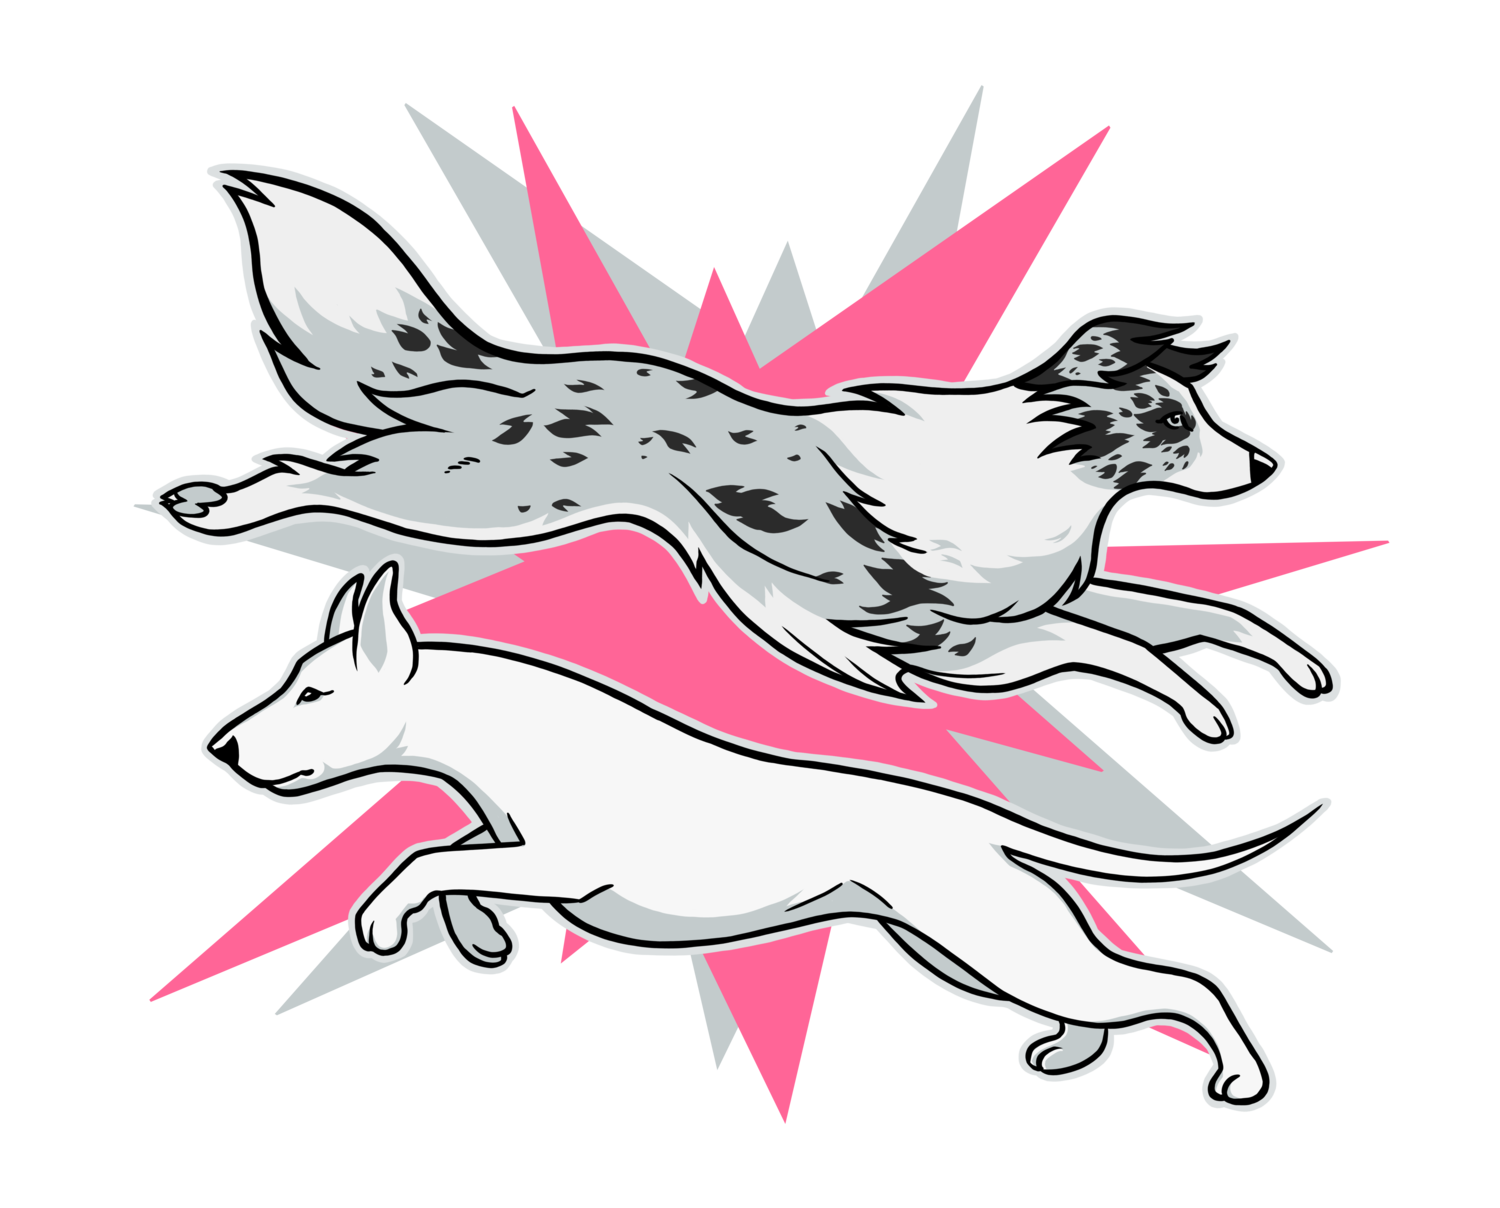 Dog jumping through hoop clipart png library About Ariana Purtee — A Purtee Pack png library